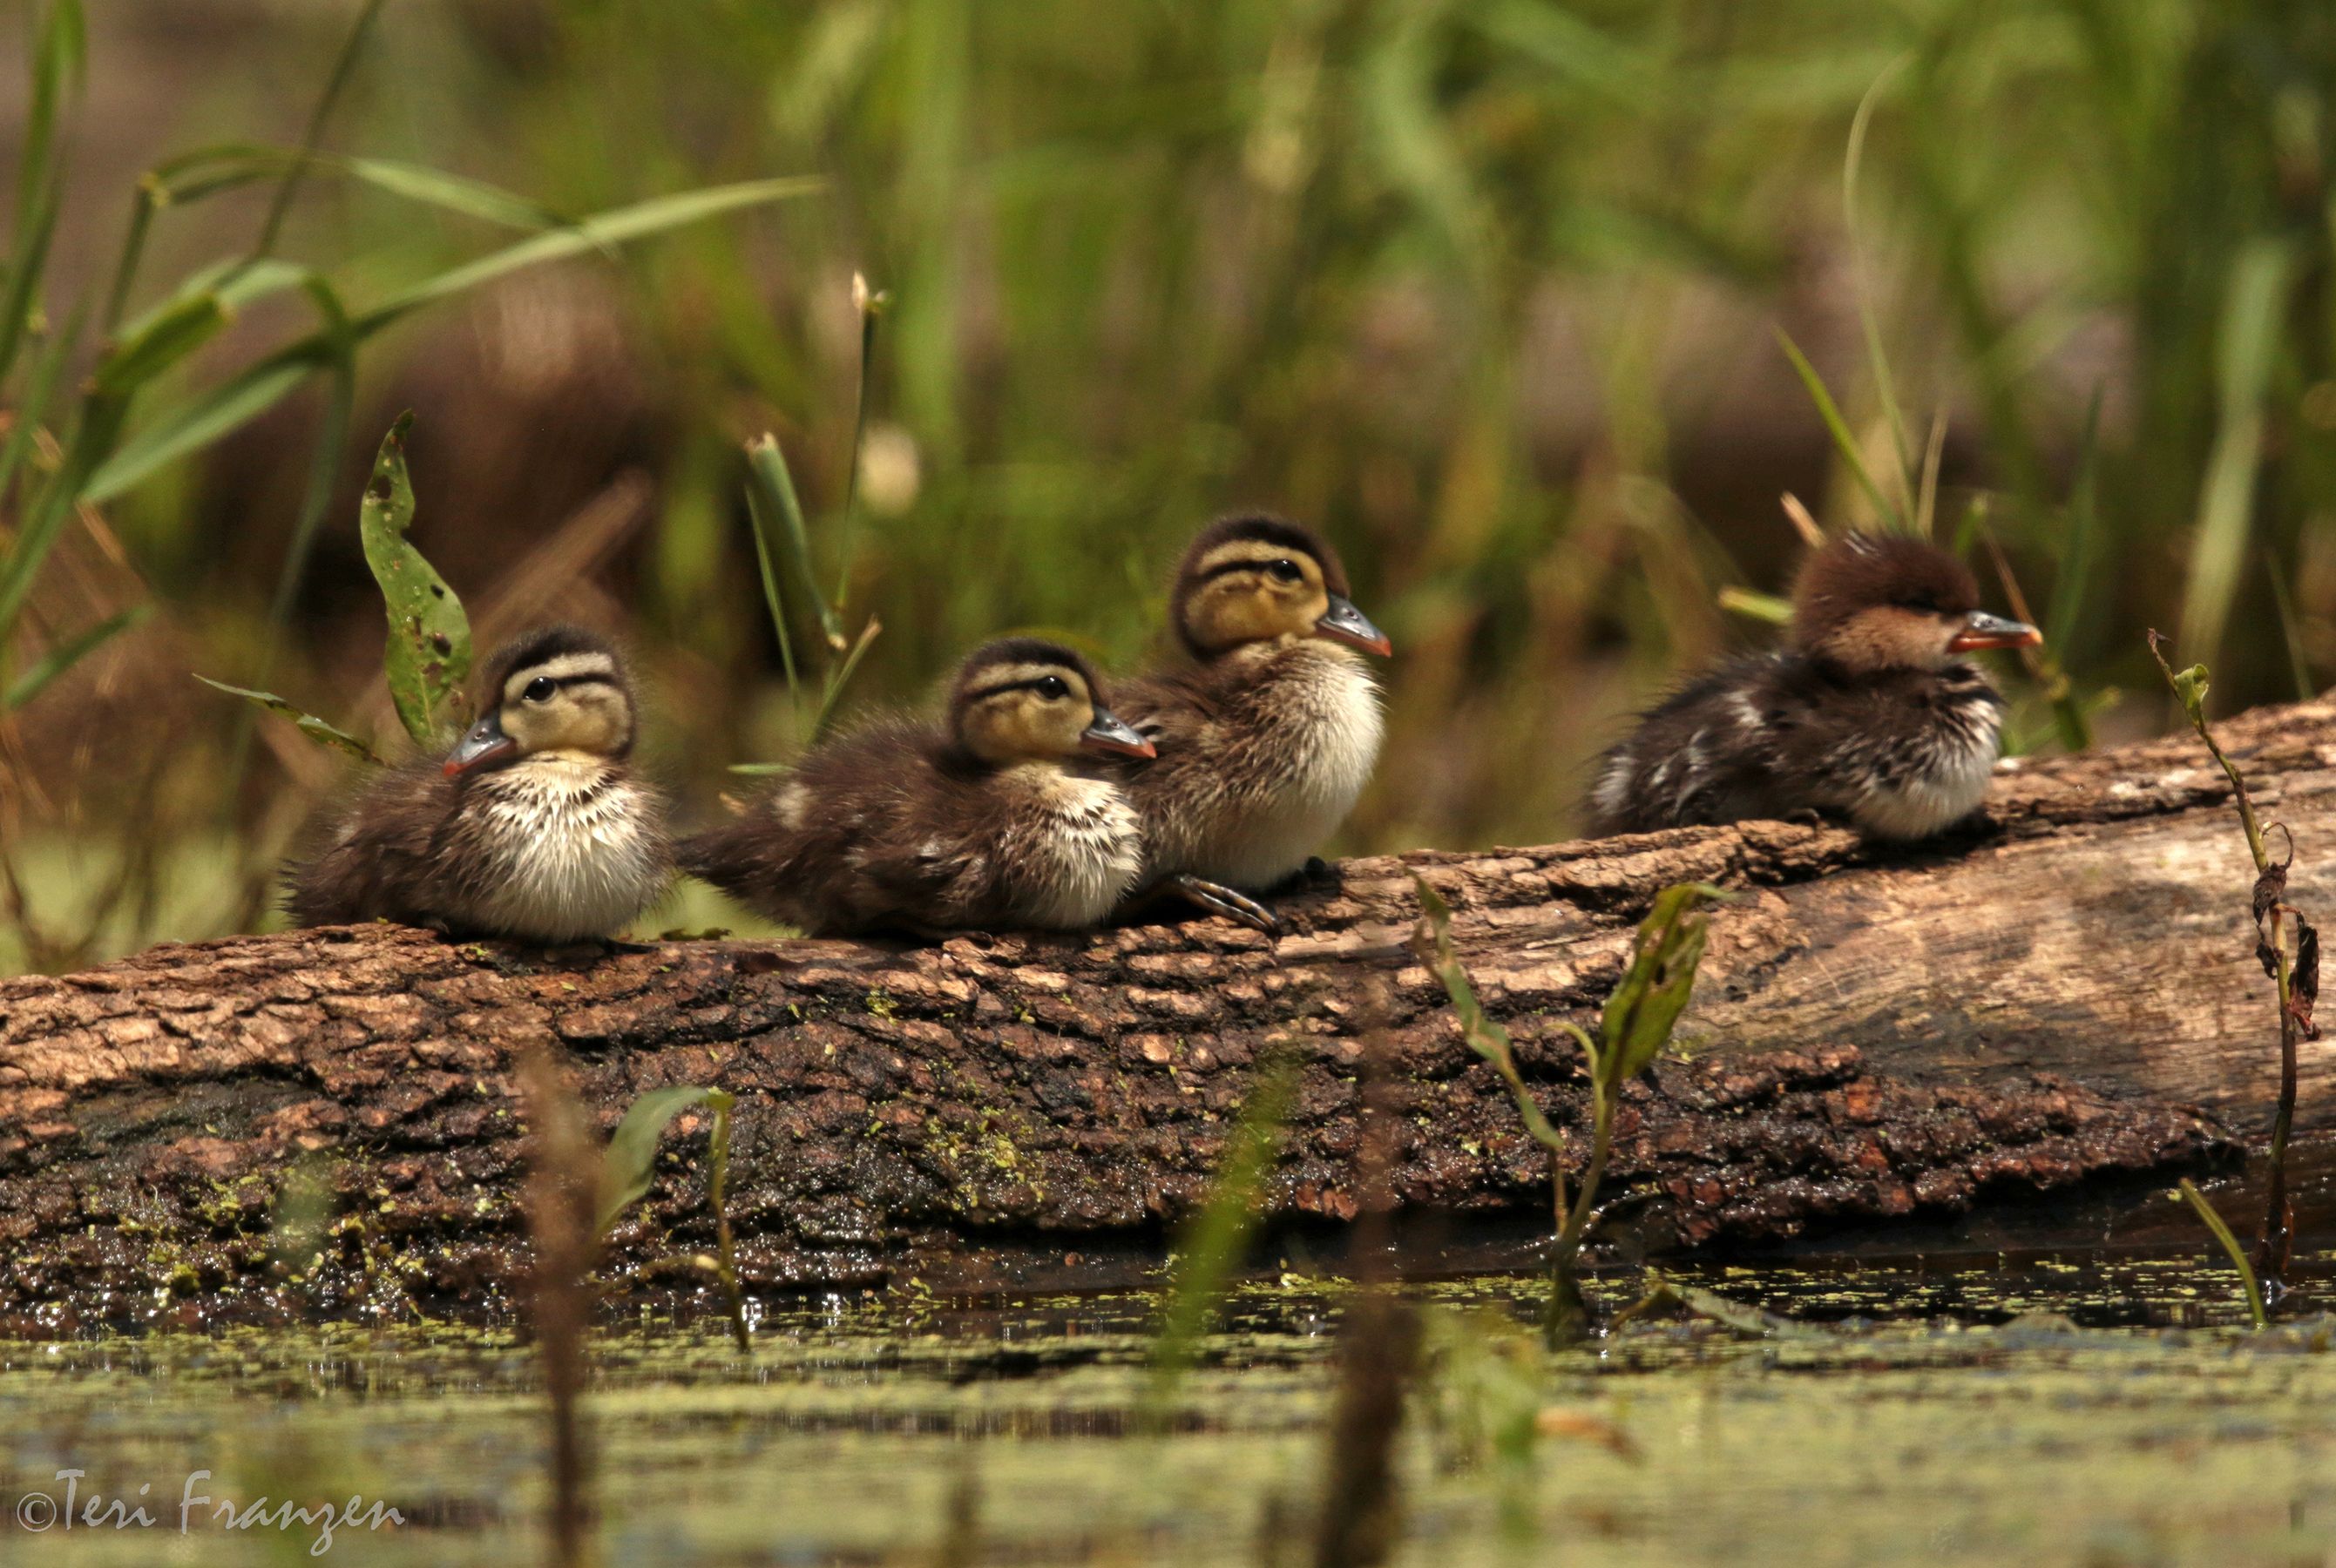 Concealed by a blind, photographer gets up-close view of unusual group of ducklings